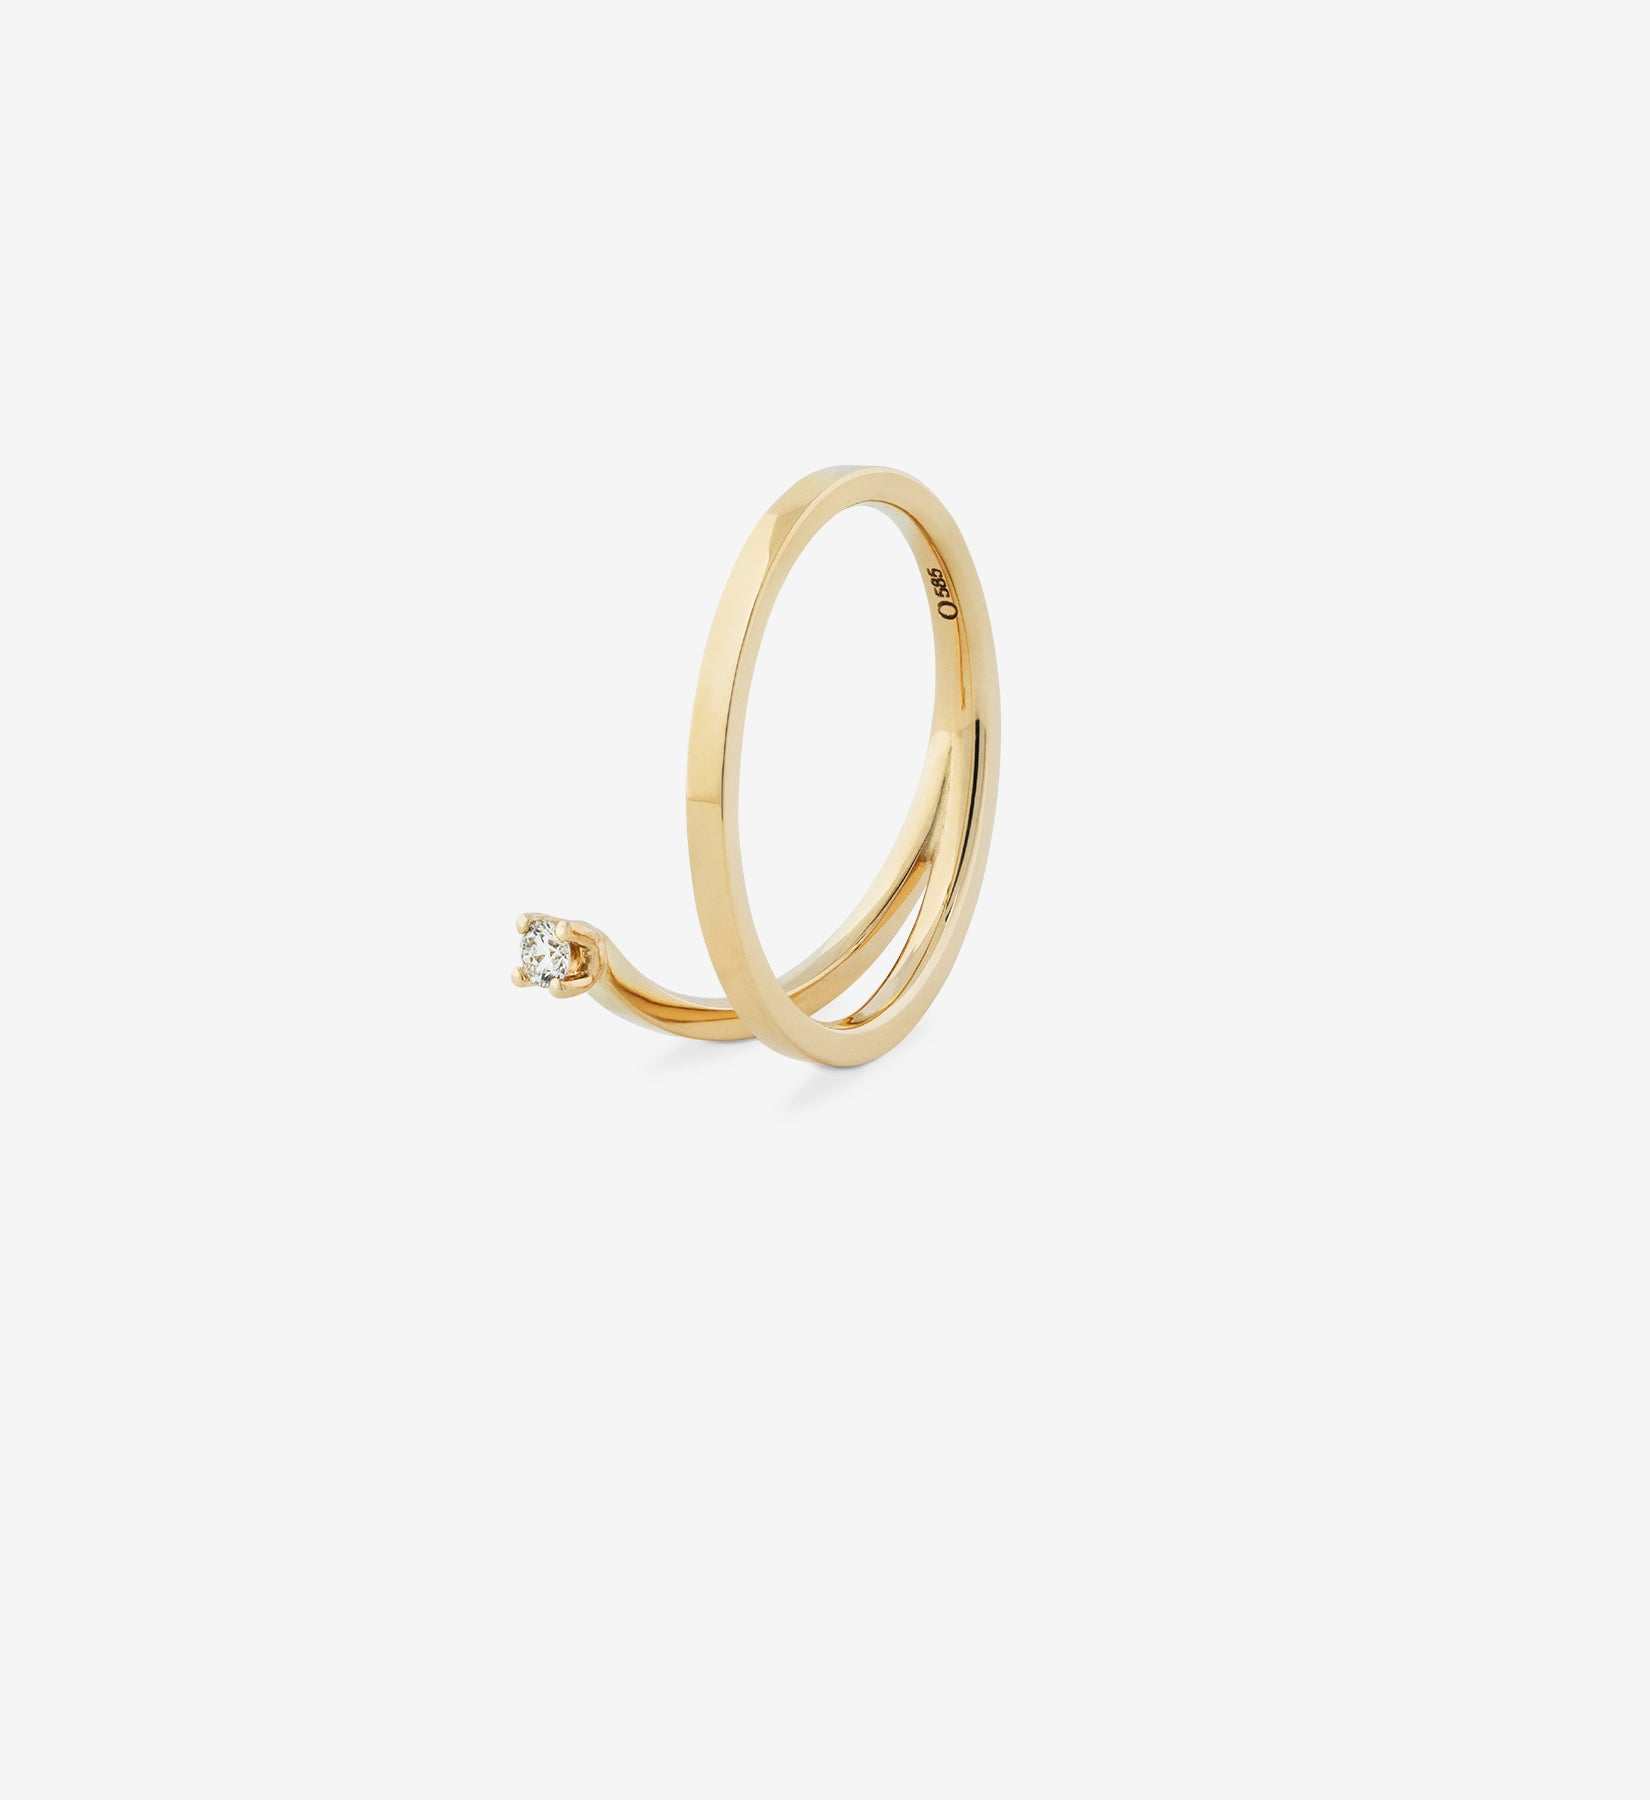 OUVERTURE, Fine jewelry, 14K gold, diamonds, golden ring, diamond ring, golden earring, diamond earring. Handcrafted jewelry. Designed in Berlin. Demifine. Earparty. Stacking rings, schmuck, diamond ring, diamond spiral ring 0.05, wedding ring, engagement ring, diamond ring.